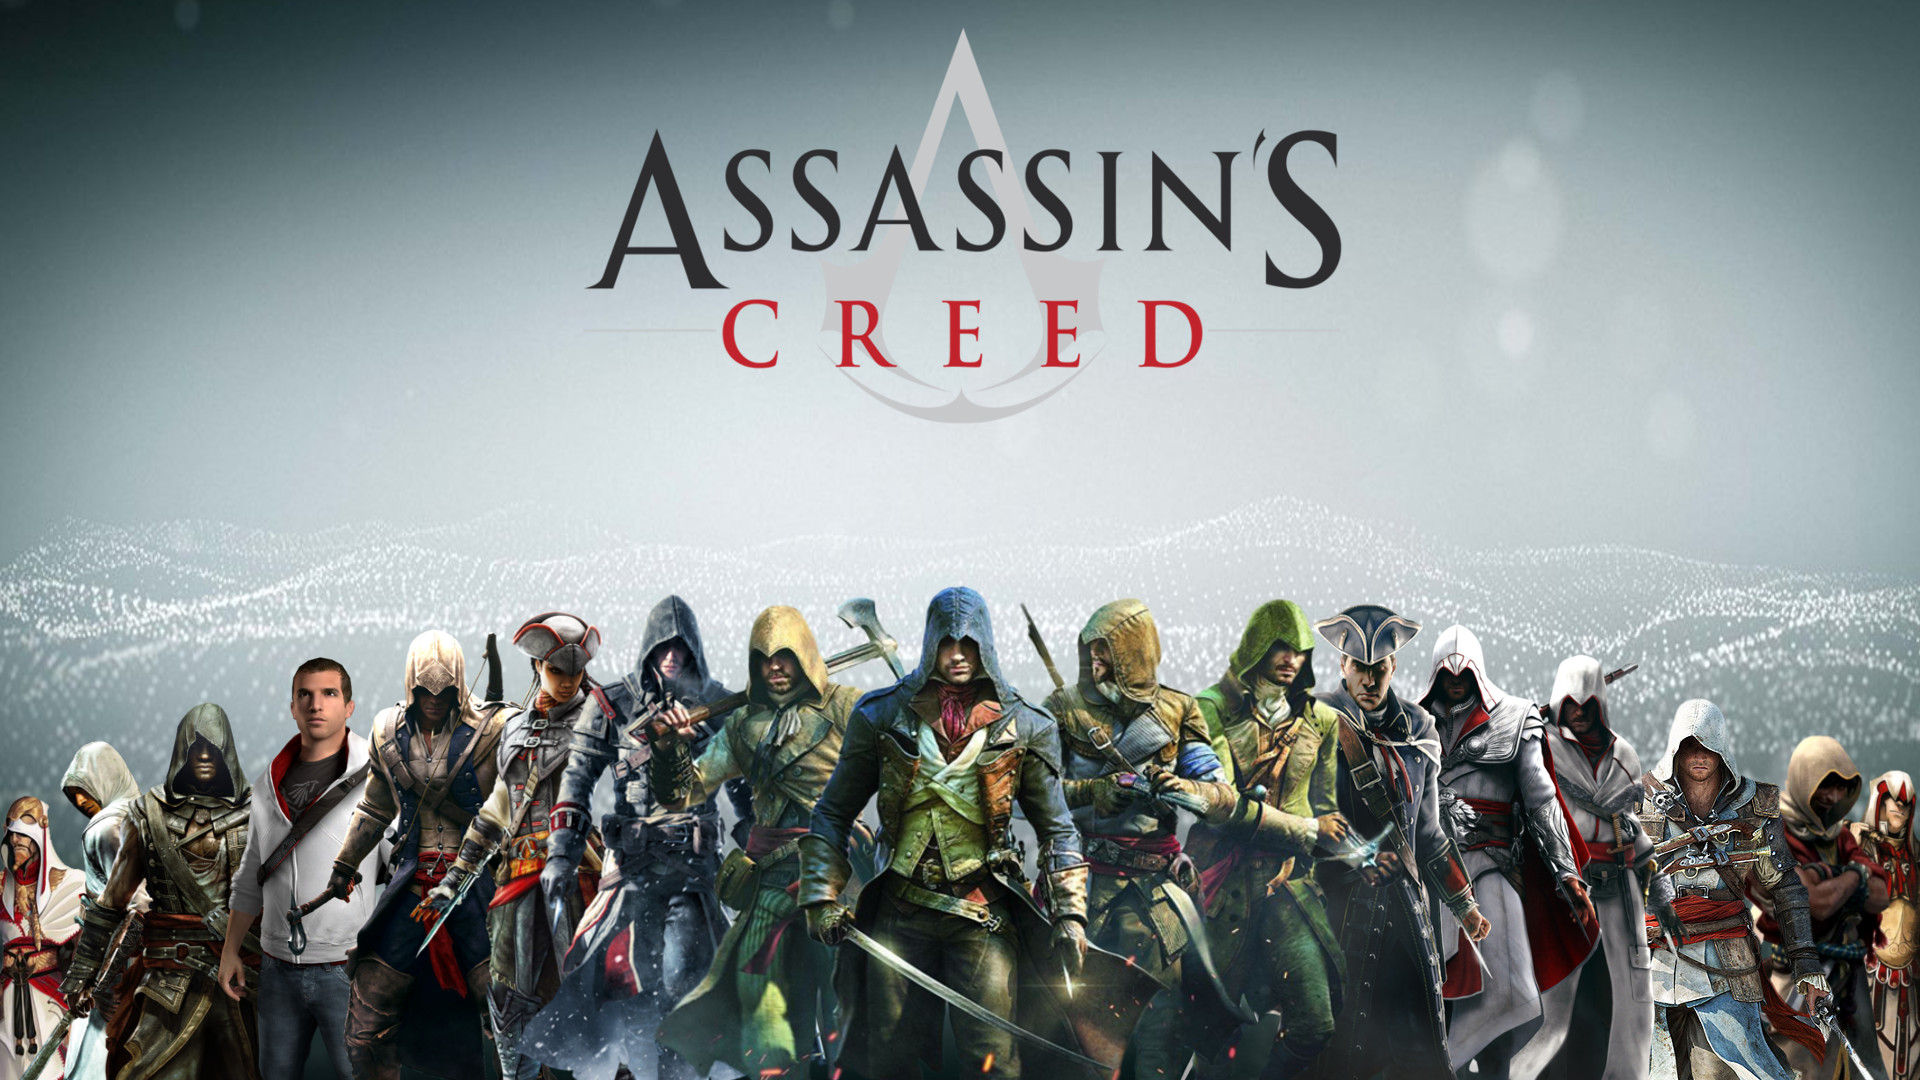 Assassins Creed All Assassins Wallpaper 88 Images